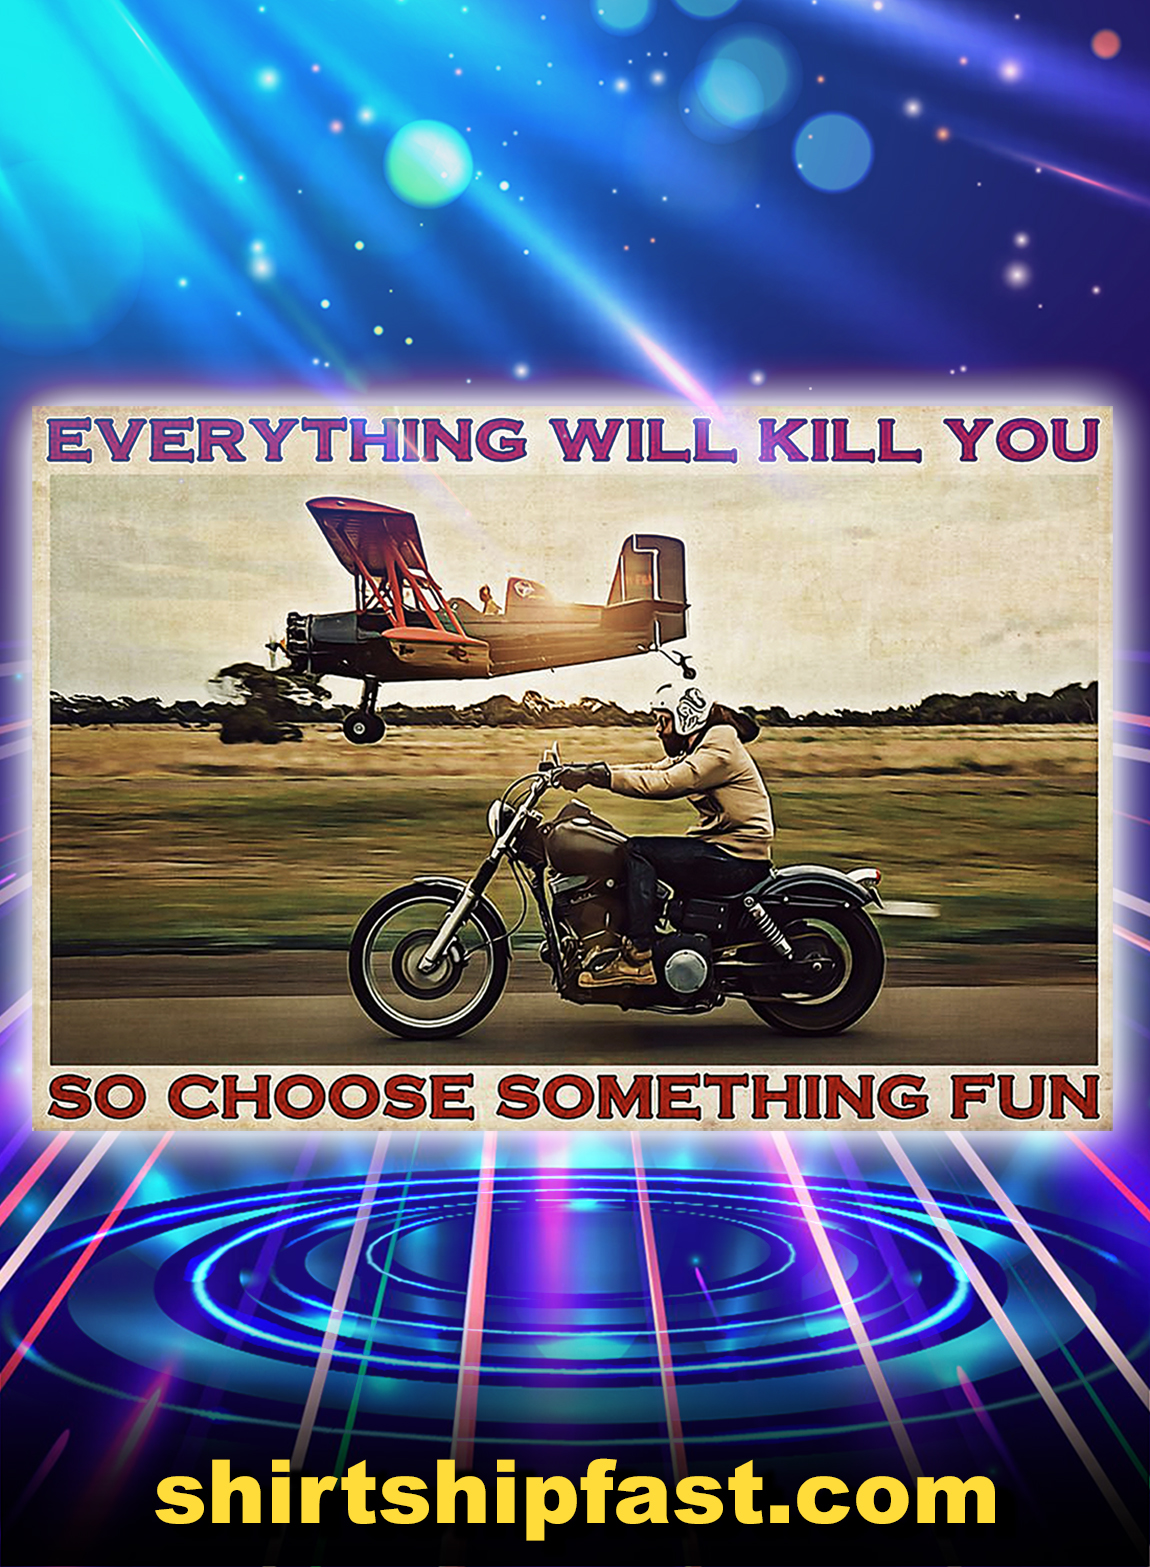 Motorbike and planes everything will kill you so choose something fun poster - A2